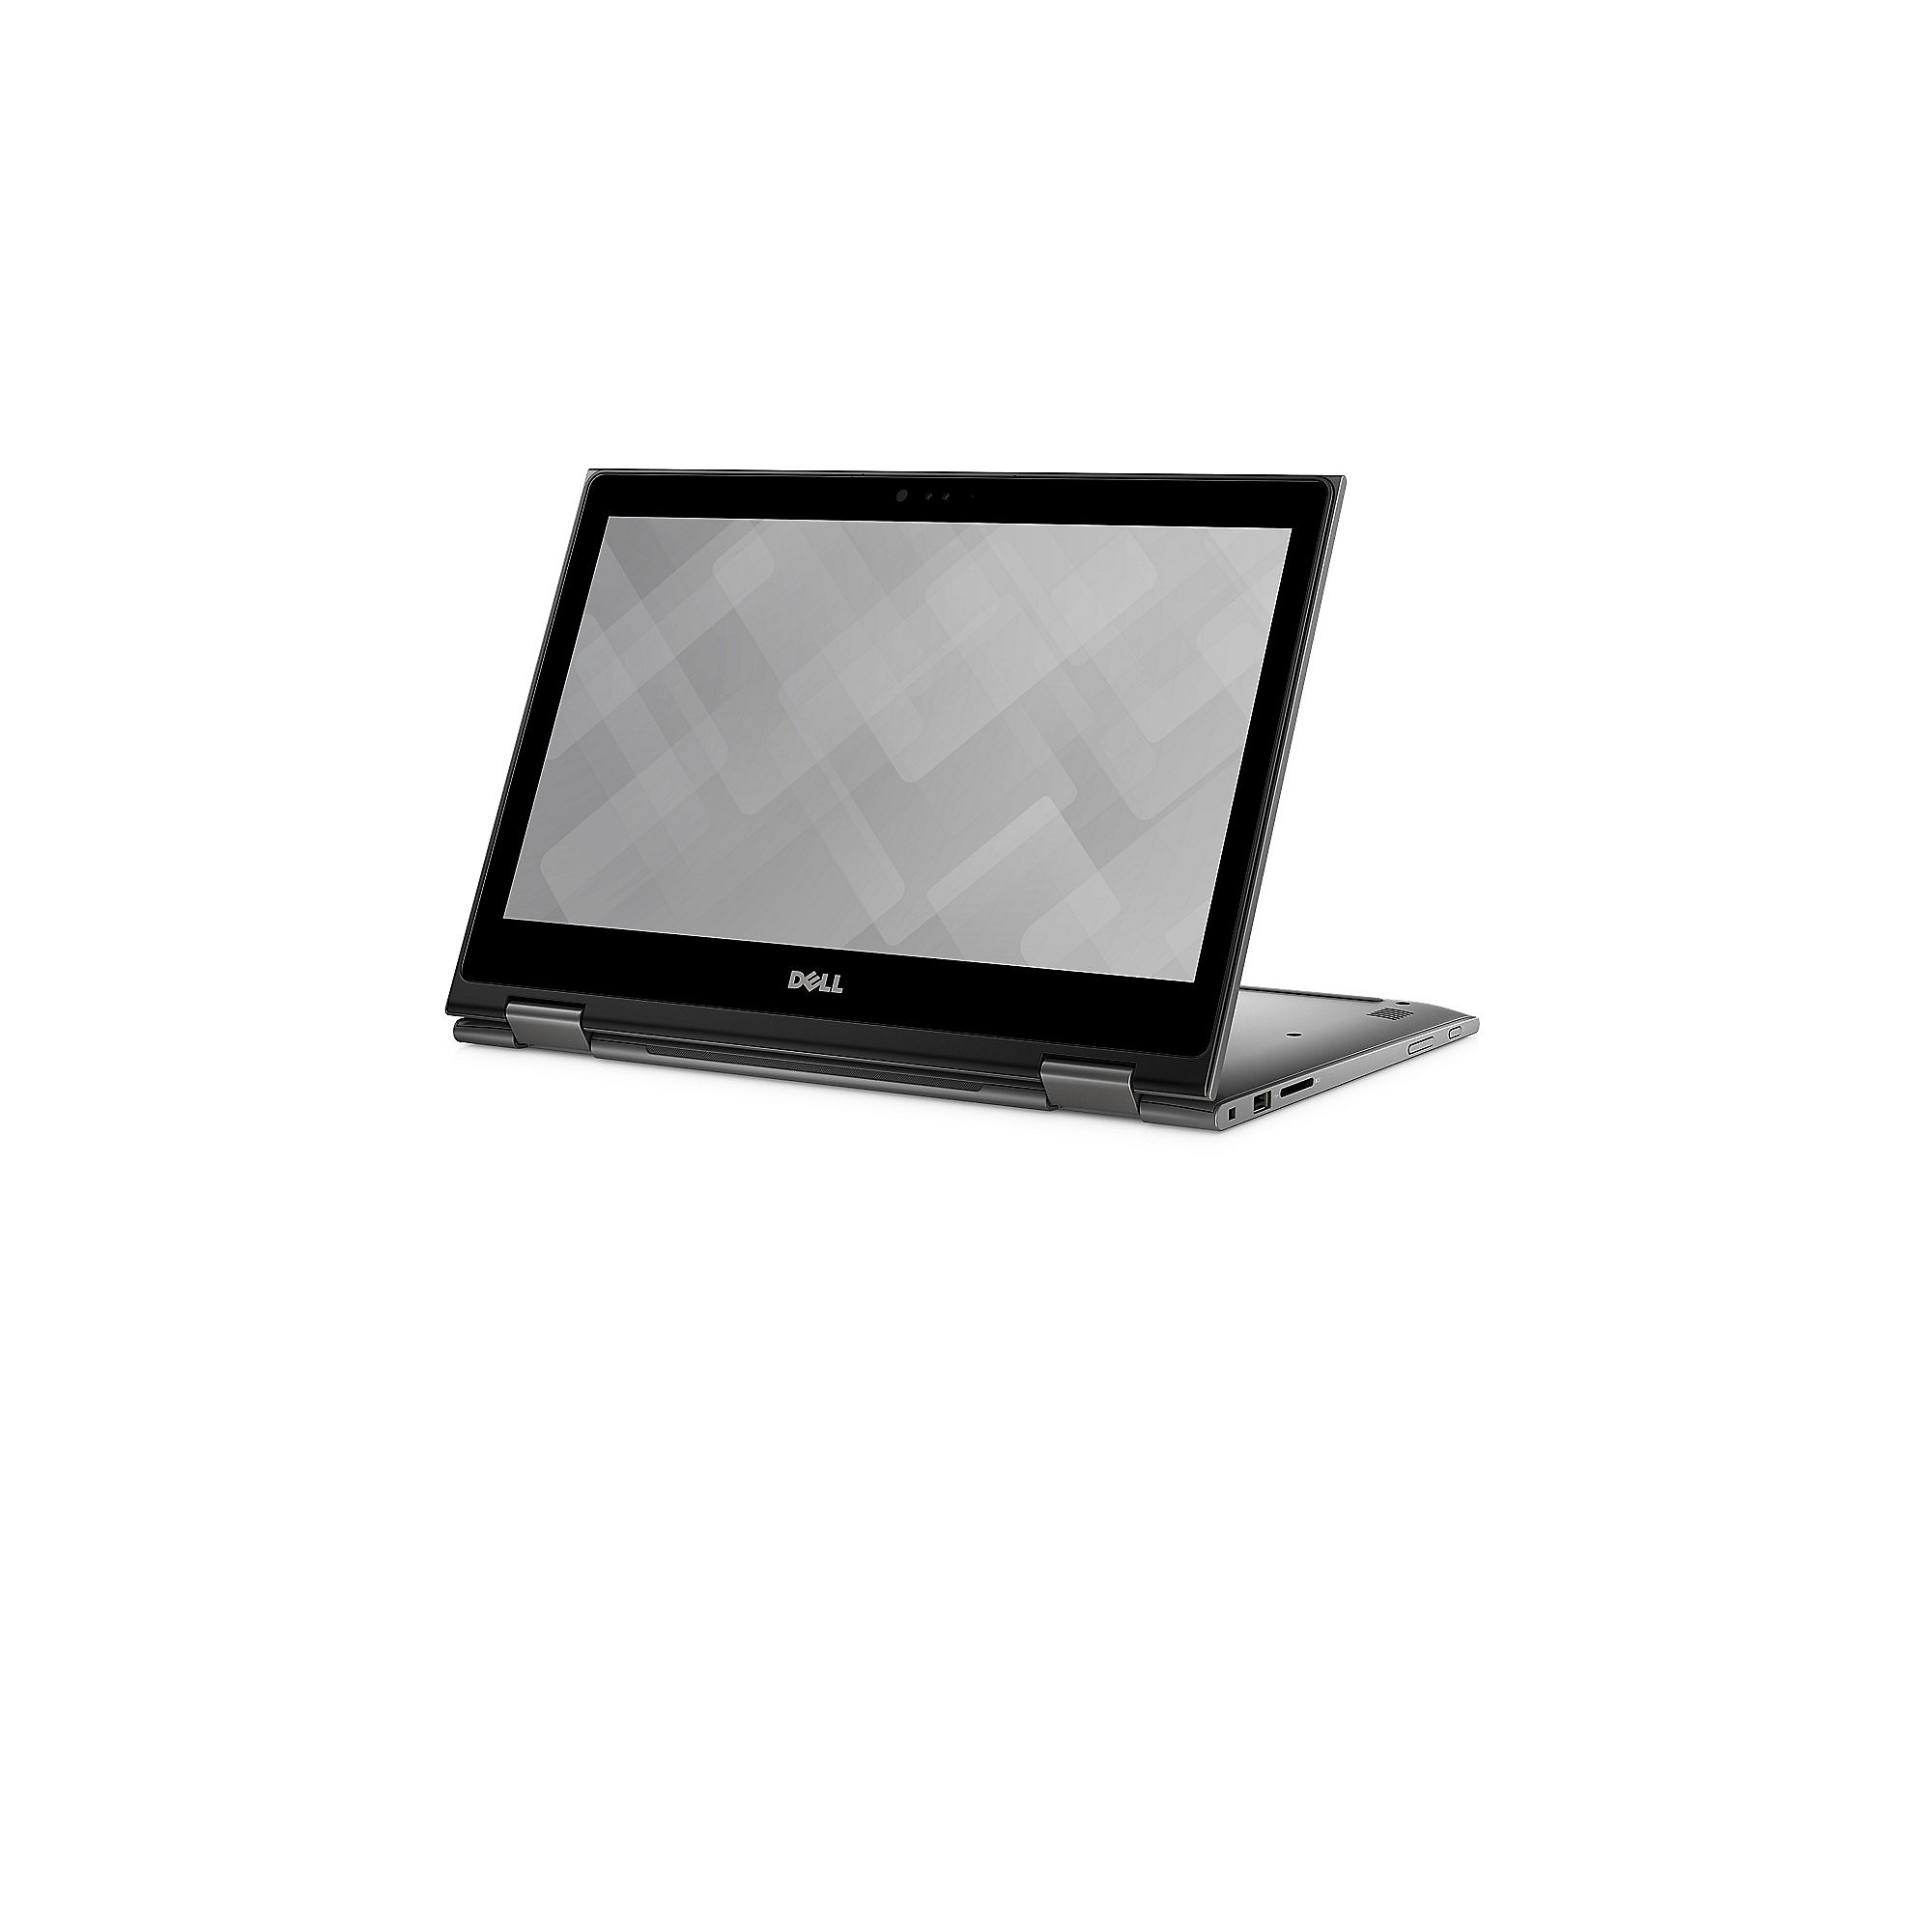 "DELL Inspiron 13-5379 i5-8250U 8GB/256GB SSD 13"" FHD Intel HD 620 Touch W10"